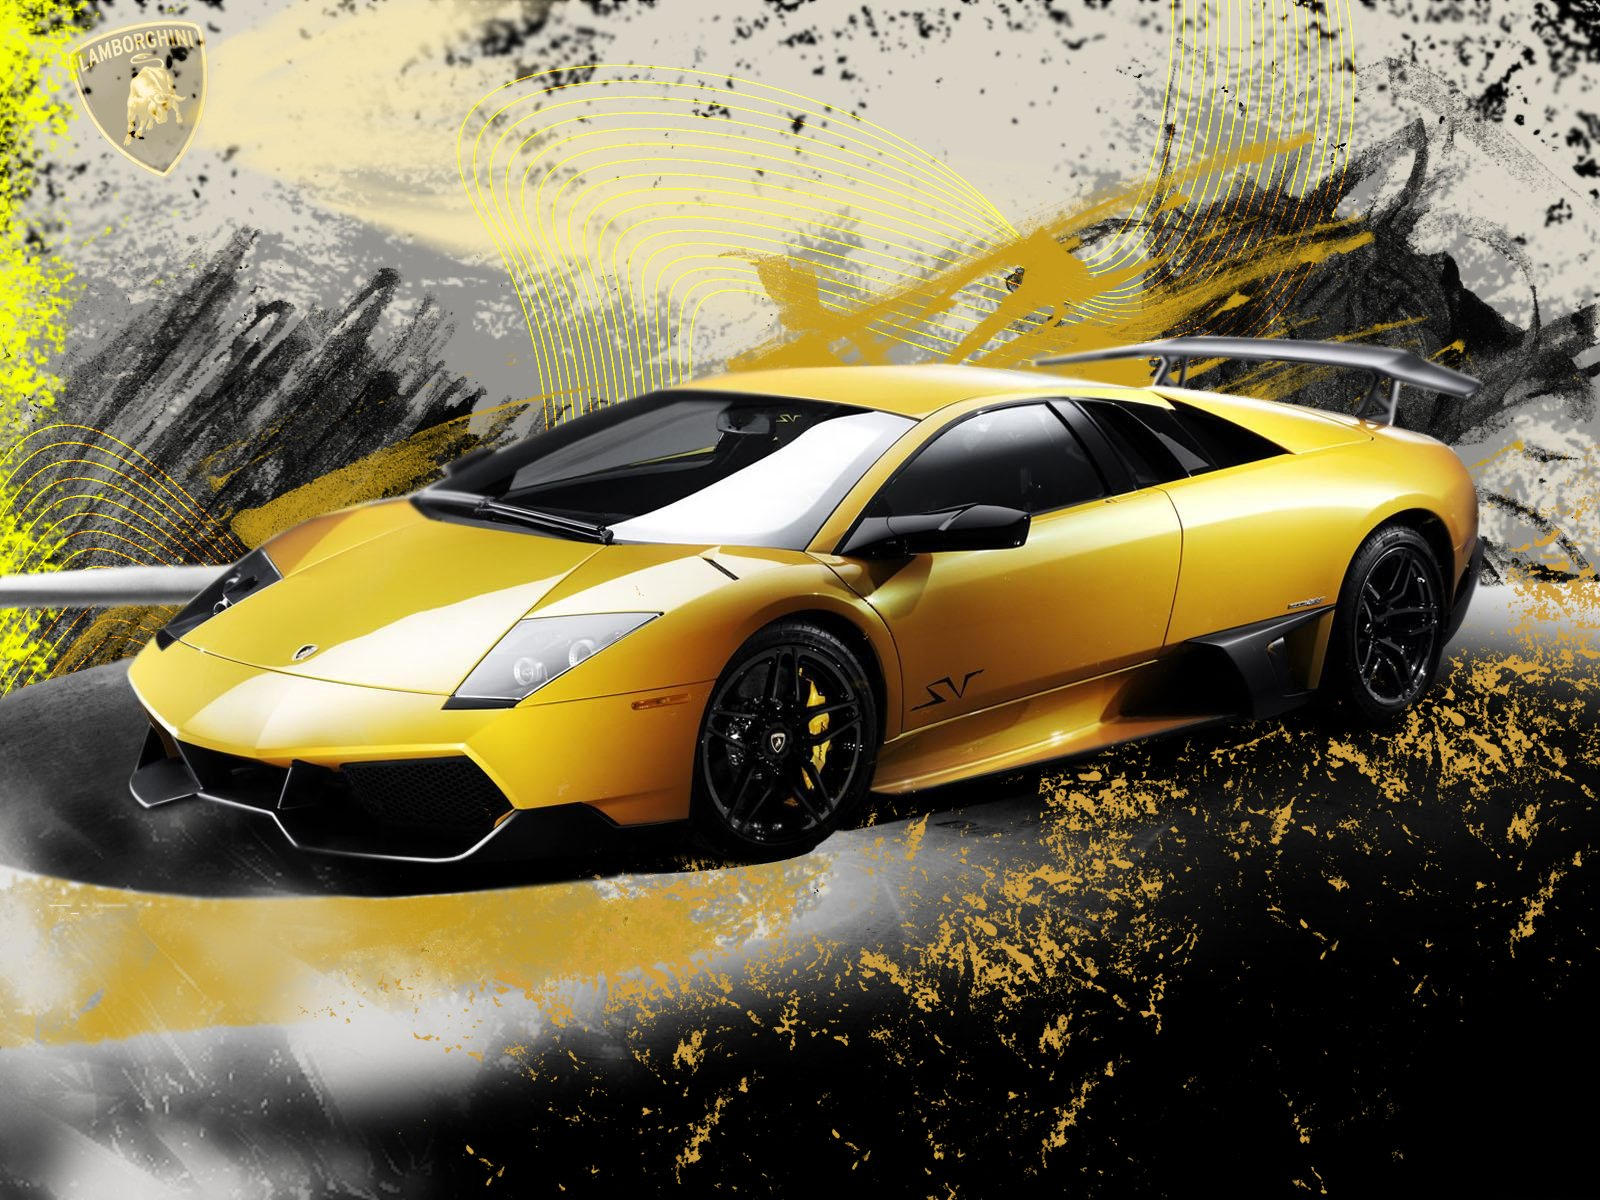 Free Download Download Cool Car Wallpapers For Sporty Desktop The 1600x1200 For Your Desktop Mobile Tablet Explore 78 Cool Backgrounds Of Cars Cool Pictures For Wallpapers Cool Cars Wallpaper